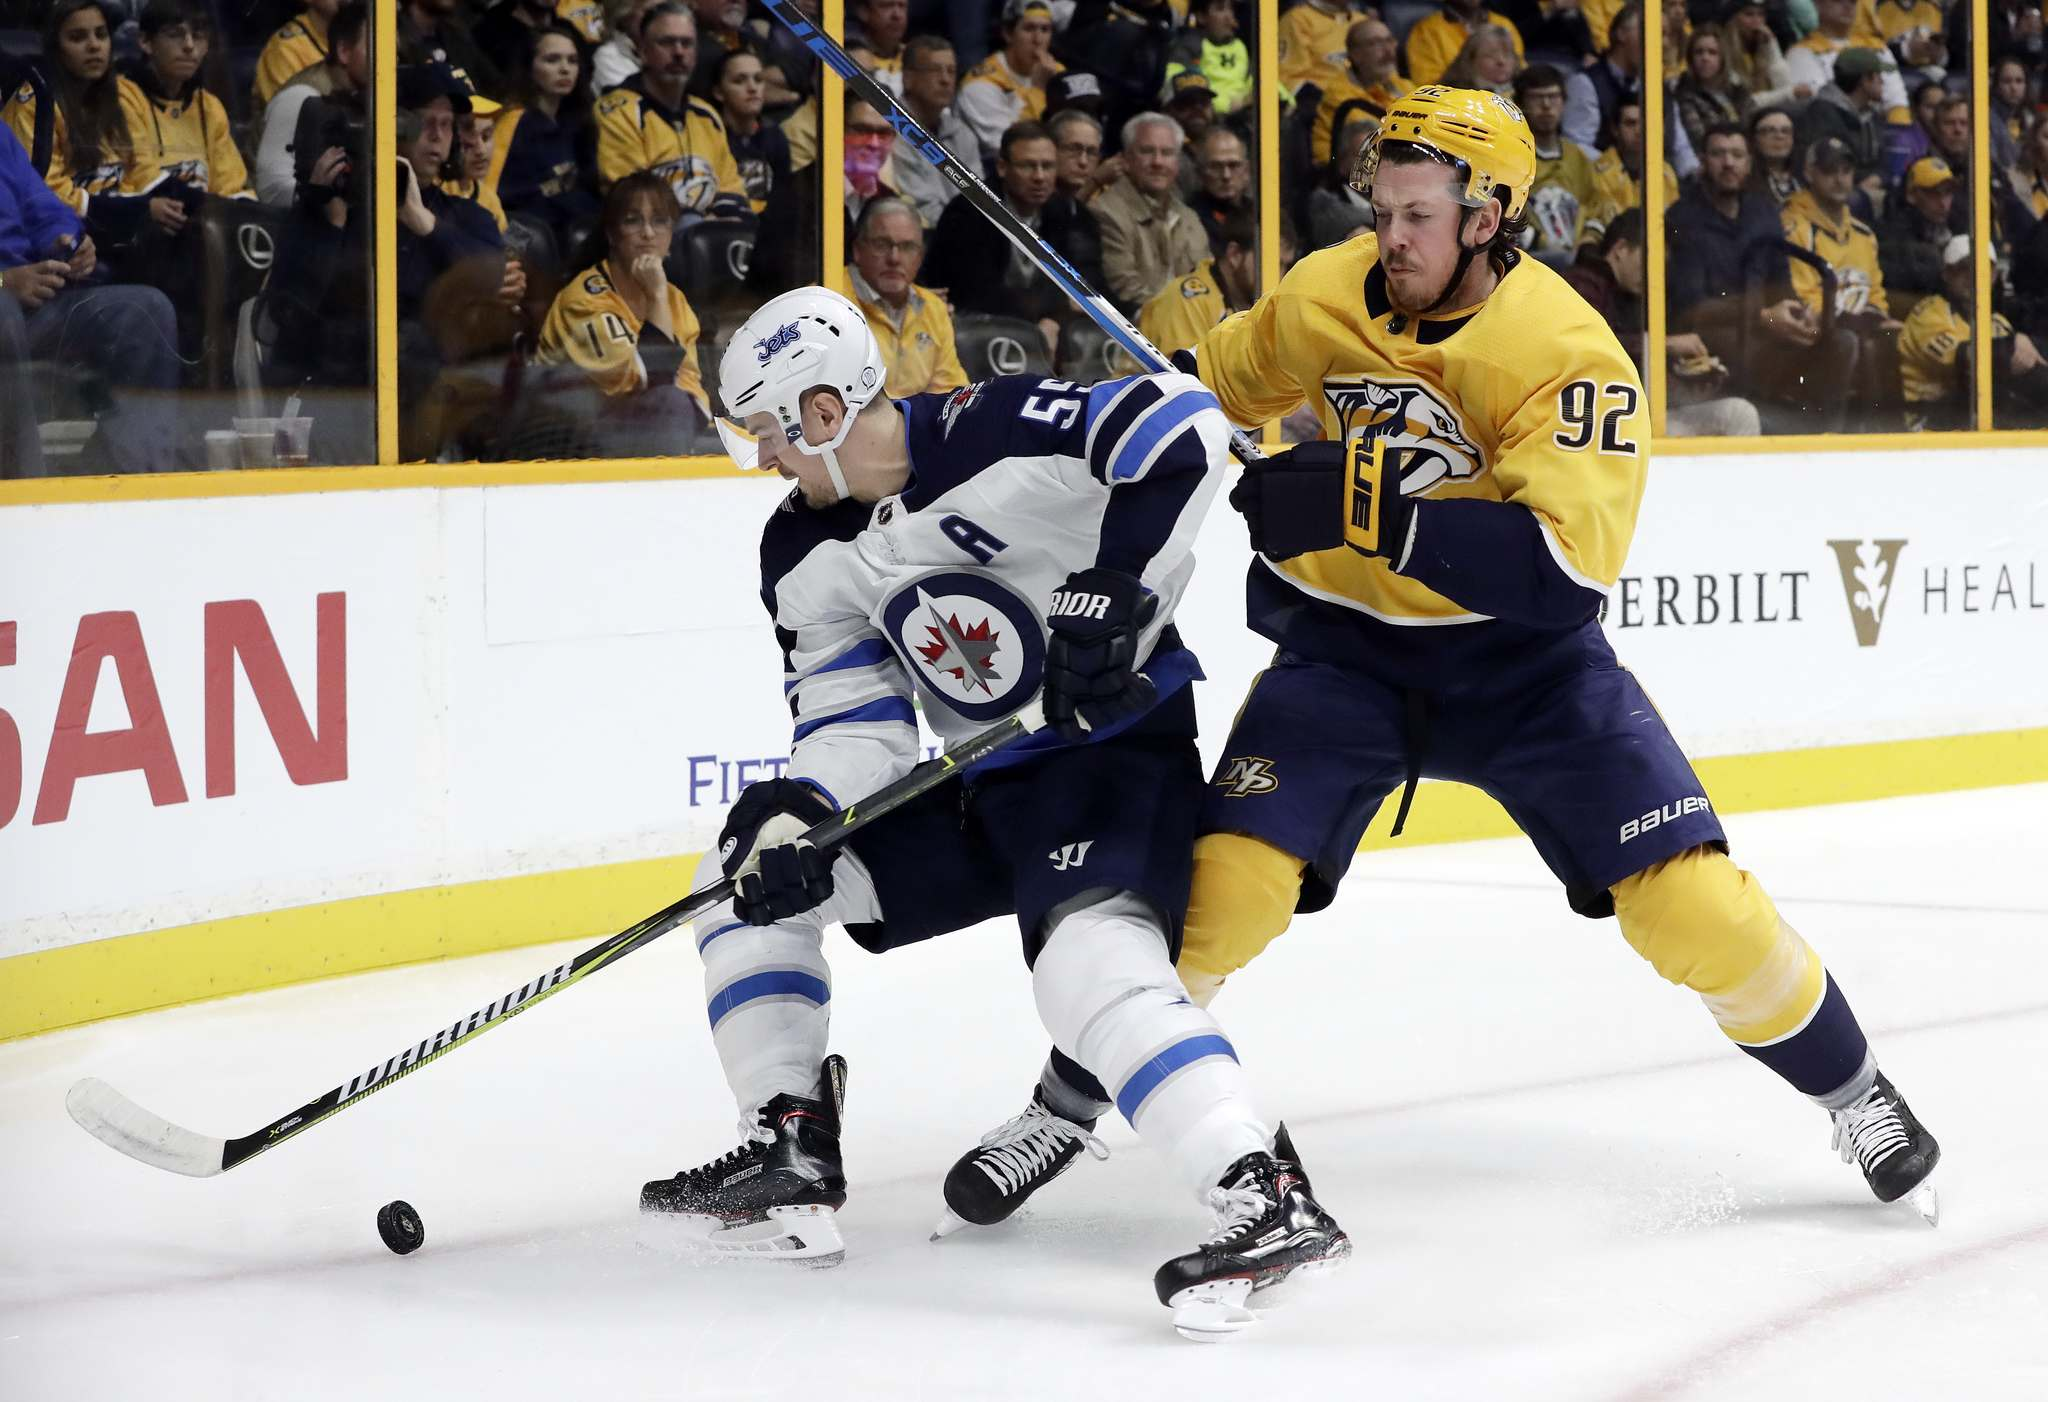 AP Photo/Mark Humphrey</p><p>Winnipeg Jets center Mark Scheifele and Nashville Predators center Ryan Johansen battle for the puck. The two have voiced a mutual respect for each other as players.</p>